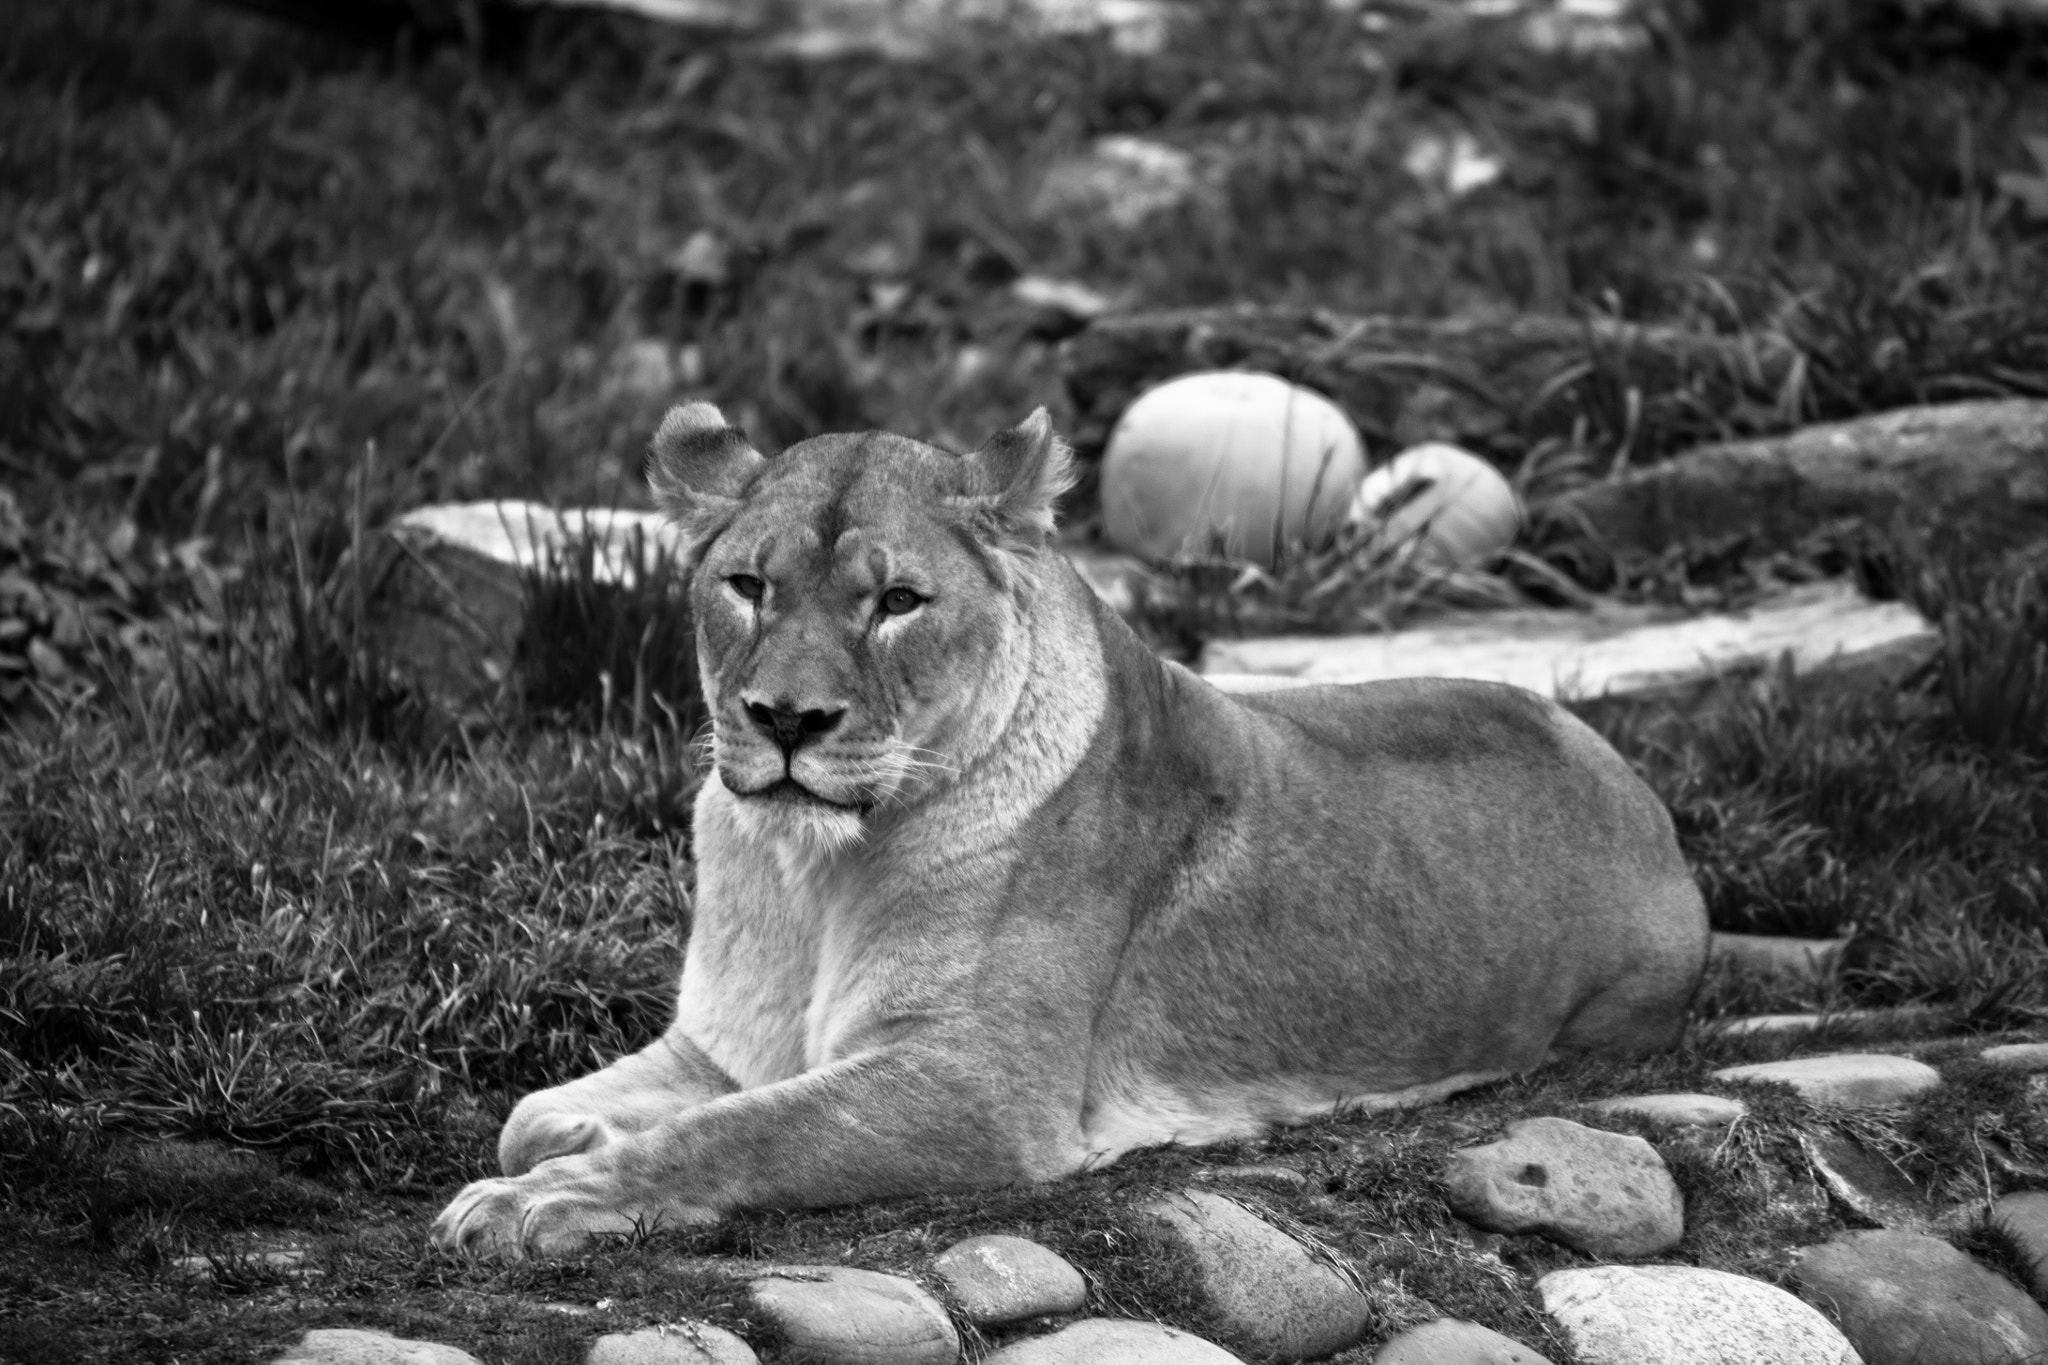 Photograph Relaxing Lion - 04/27/12 by Jaime Wojick on 500px